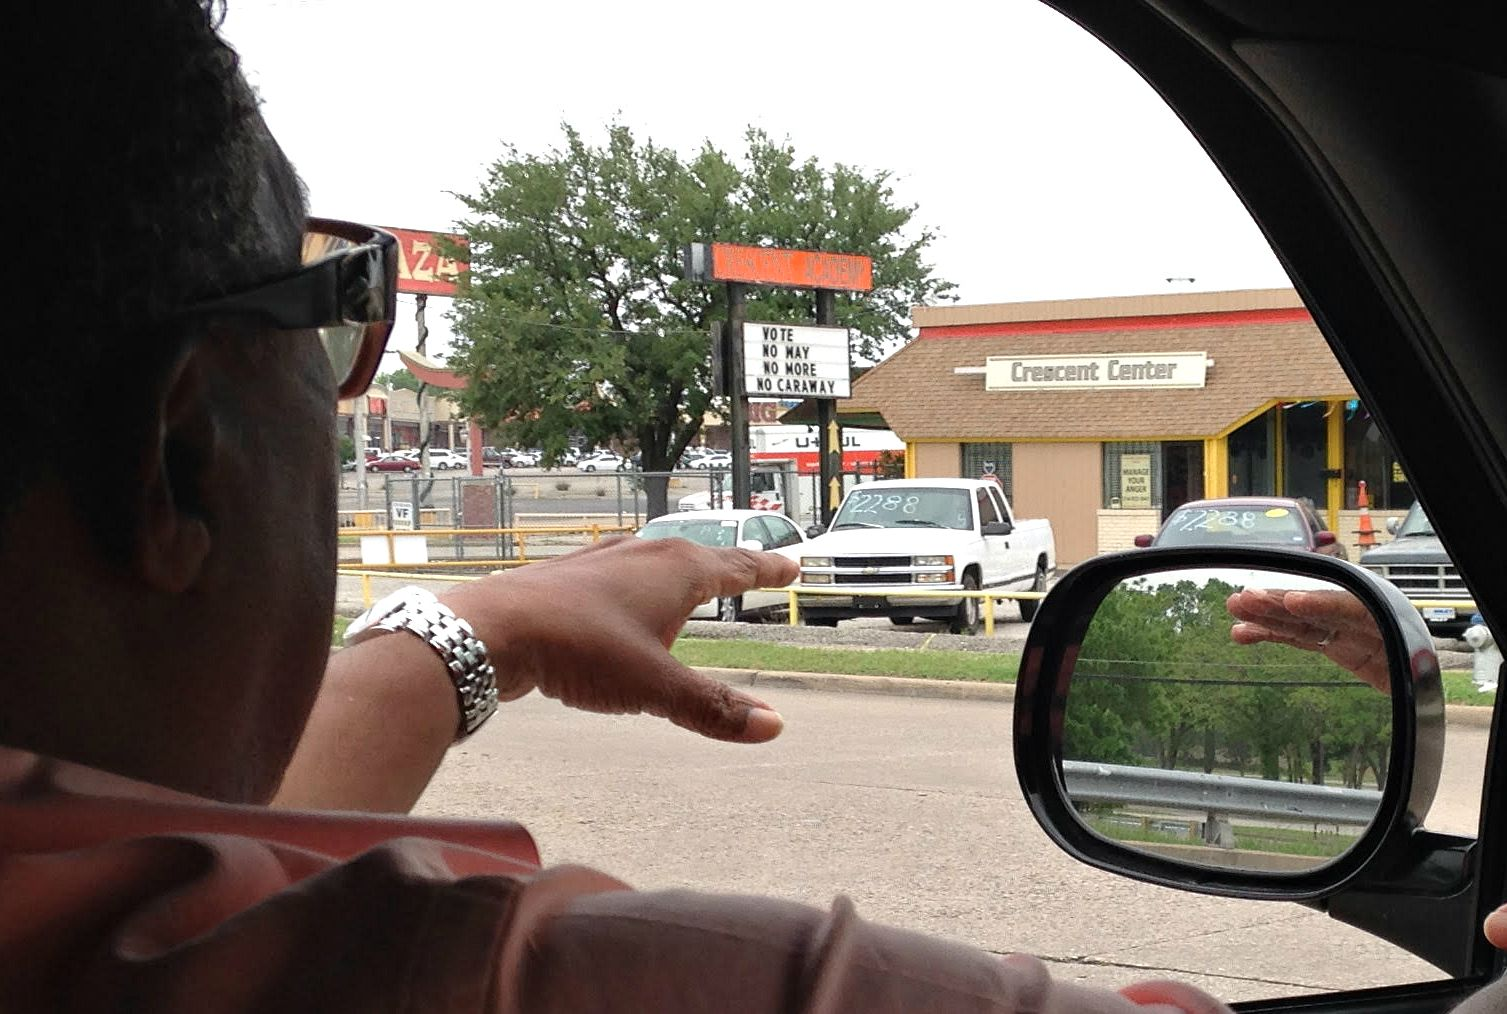 Caraway points out the anti-Caraway sign posted in his district, near Big T Plaza.